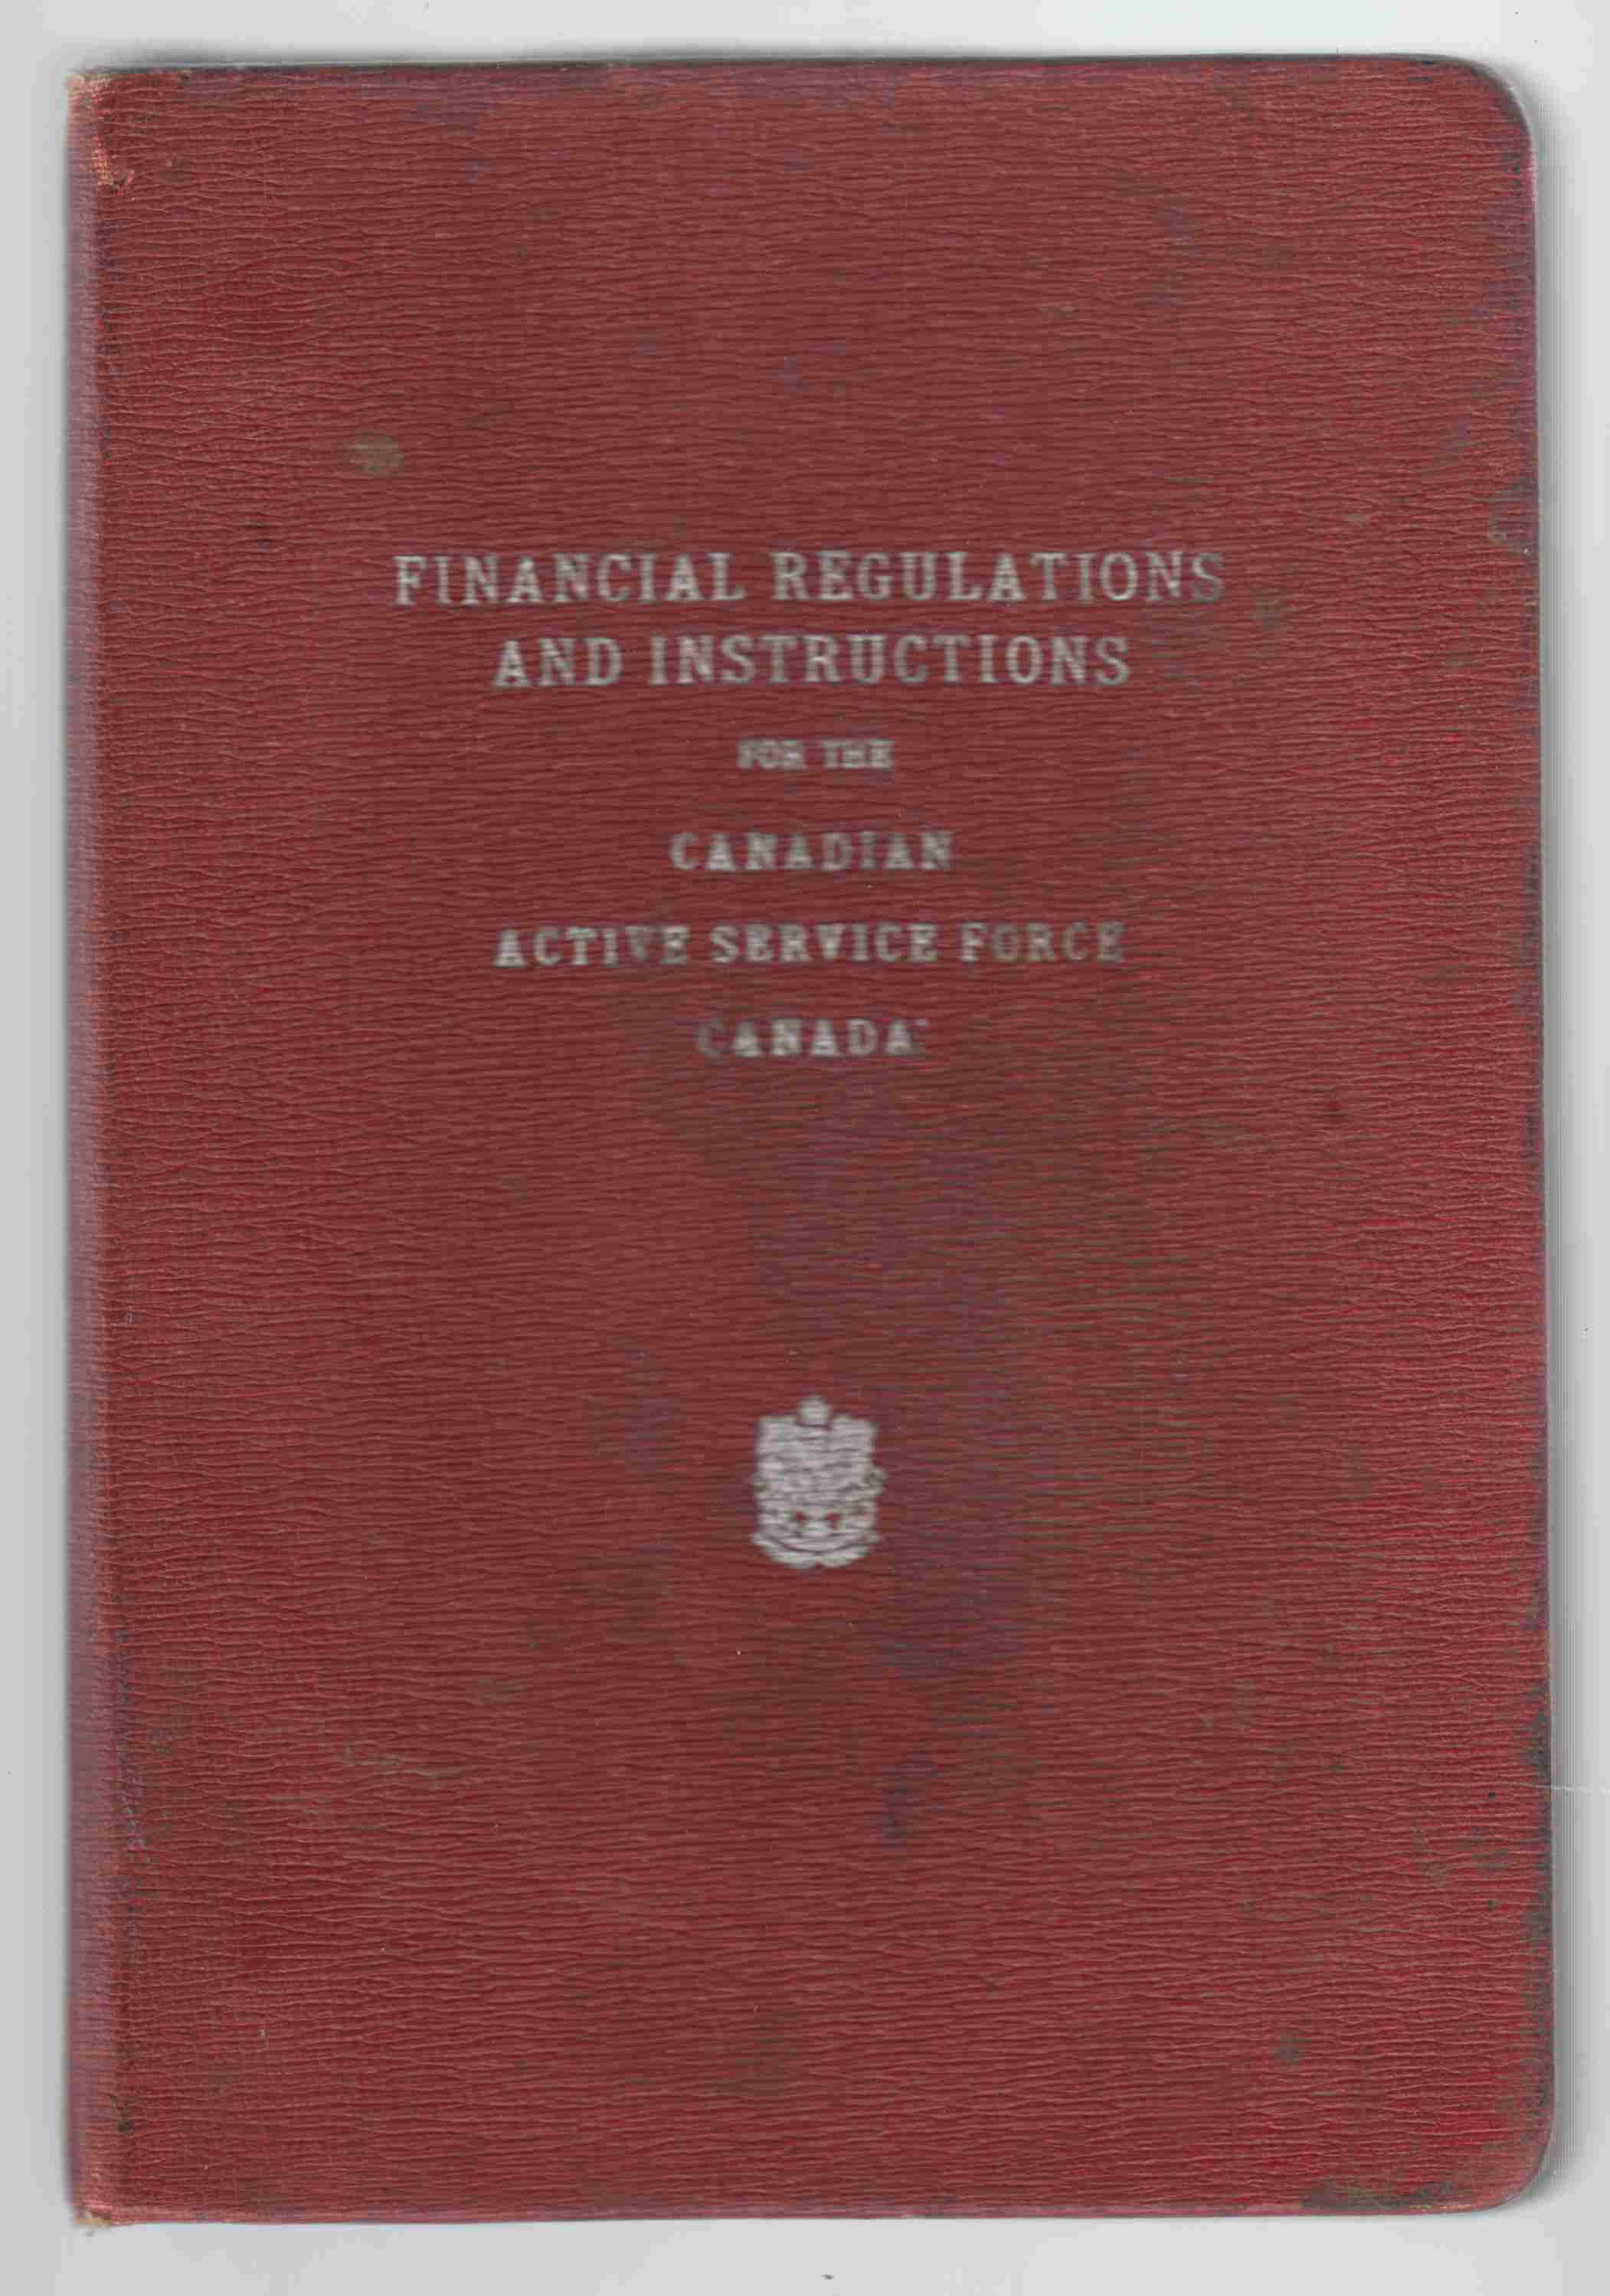 Image for Financial Regulations and Instructions for the Canadian Active Service Force (Canada)